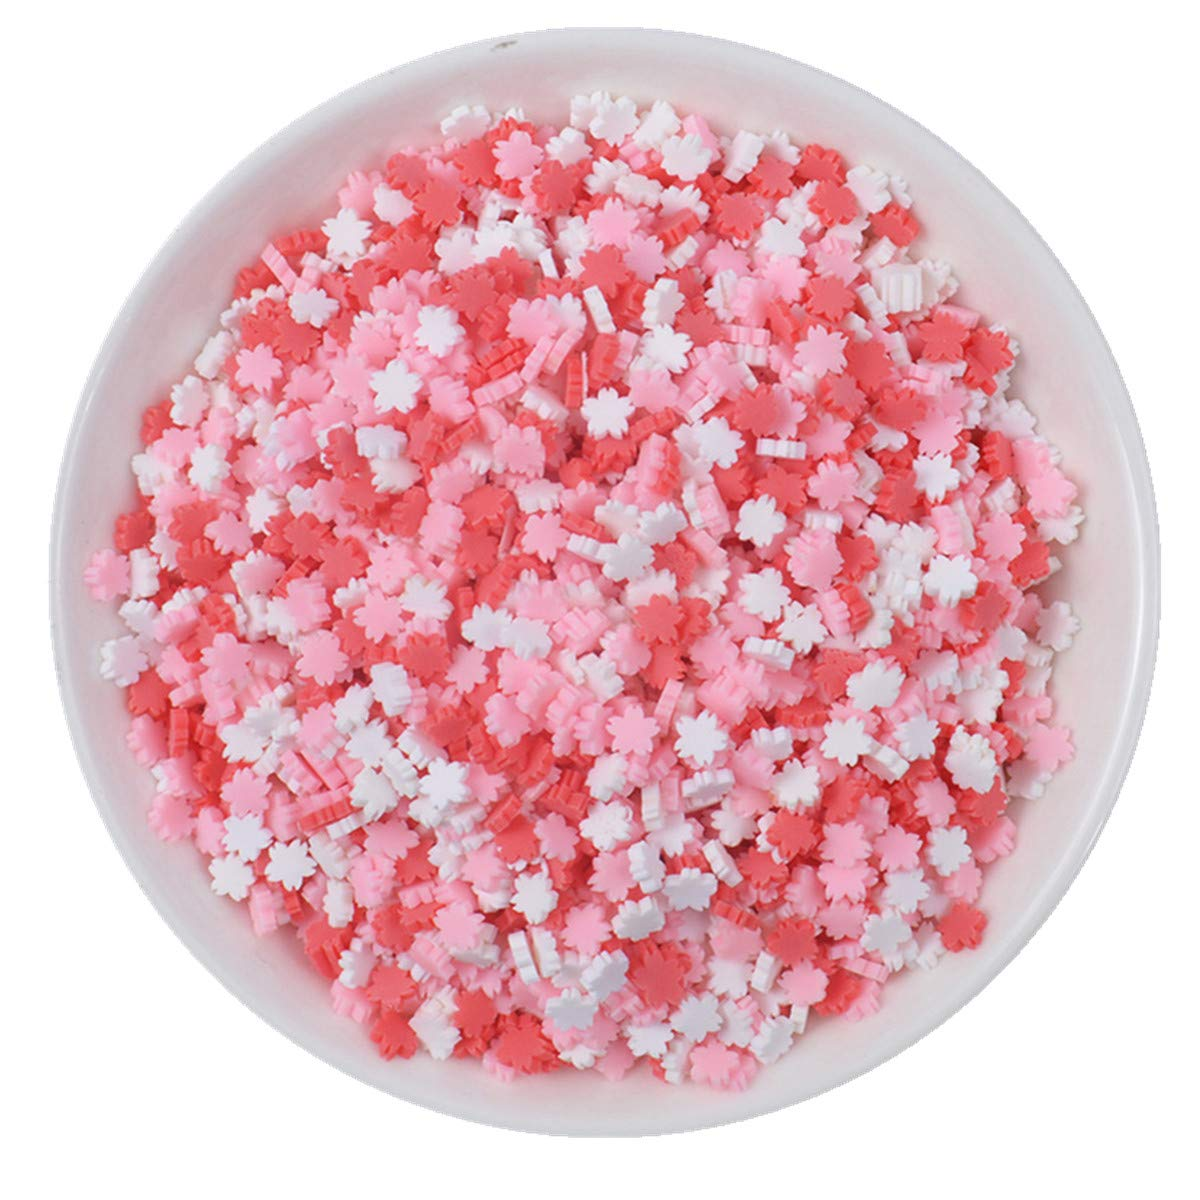 100g Resin Flatbacks Slime Accessories Clay Sprinkles Decoration for Slime  Charms Filler DIY Slime Supplies Fake Candy Chocolate Cake Dessert Mud